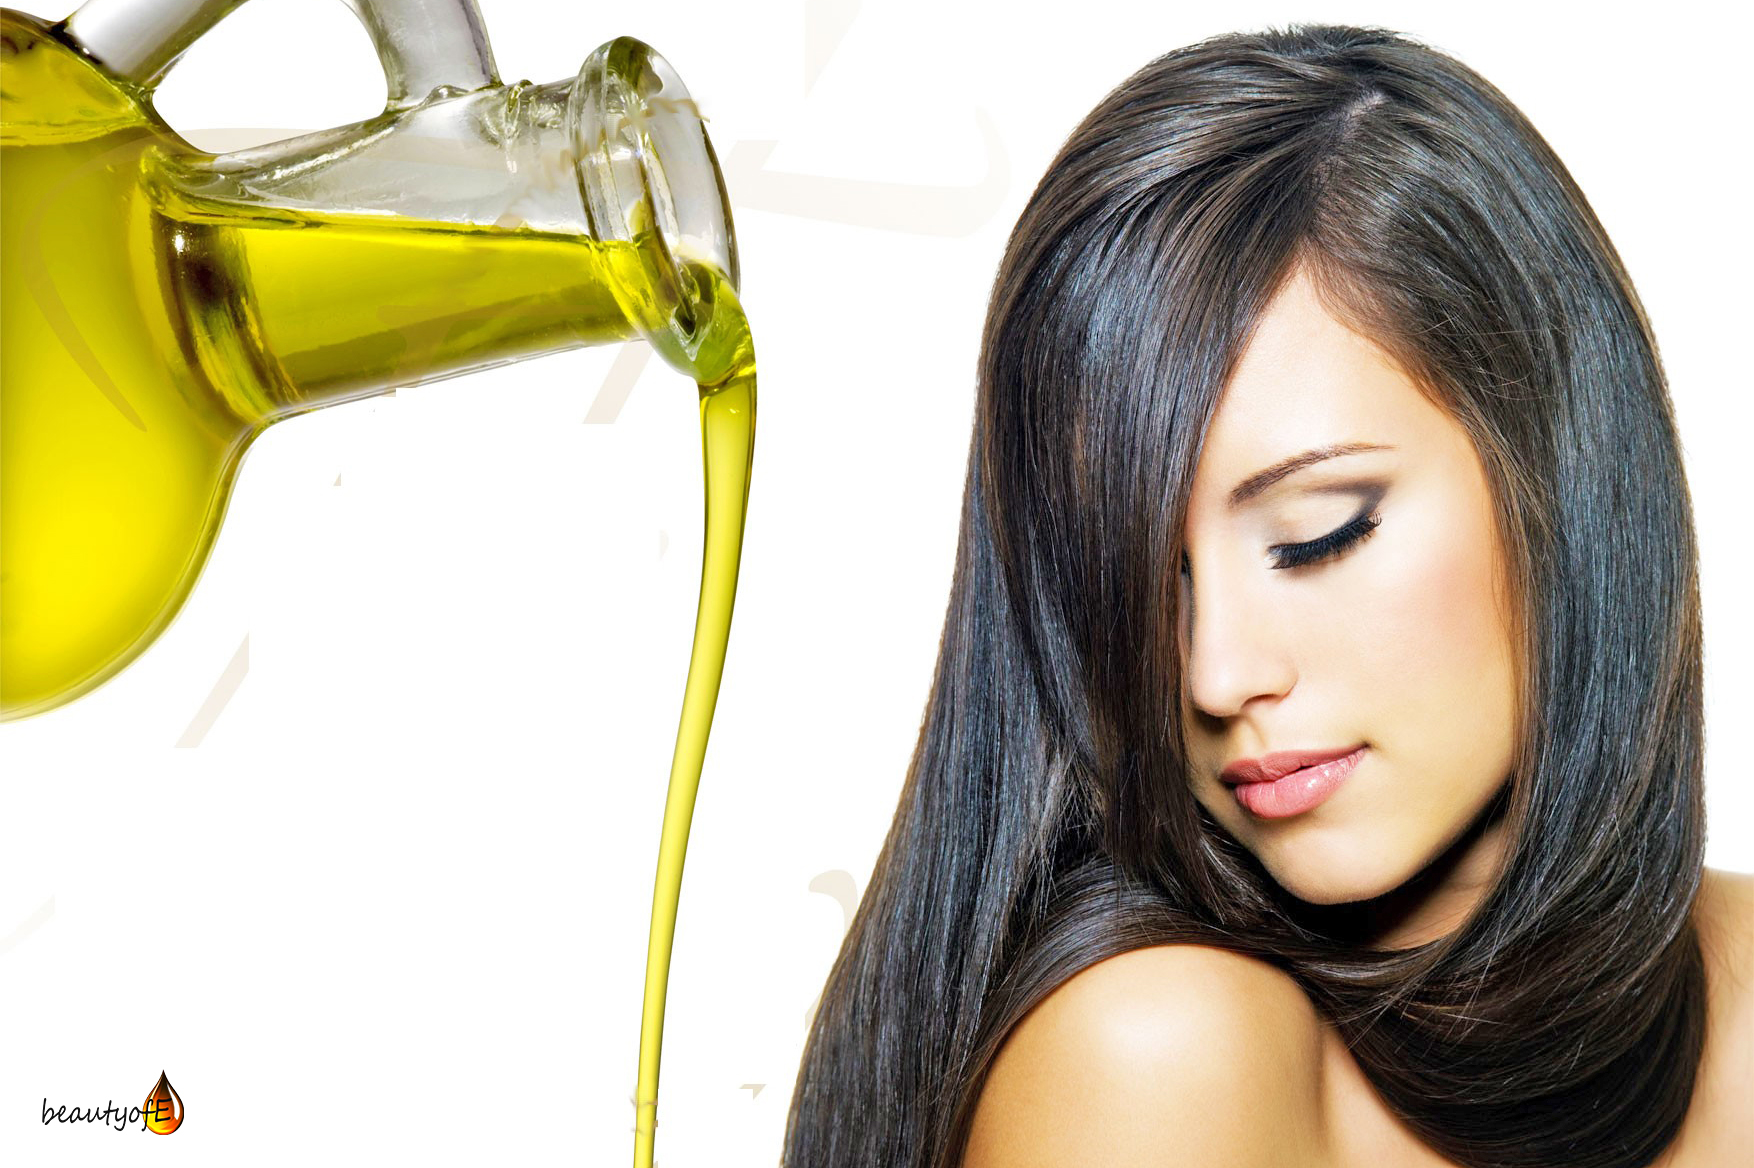 Vitamin E oil for hair